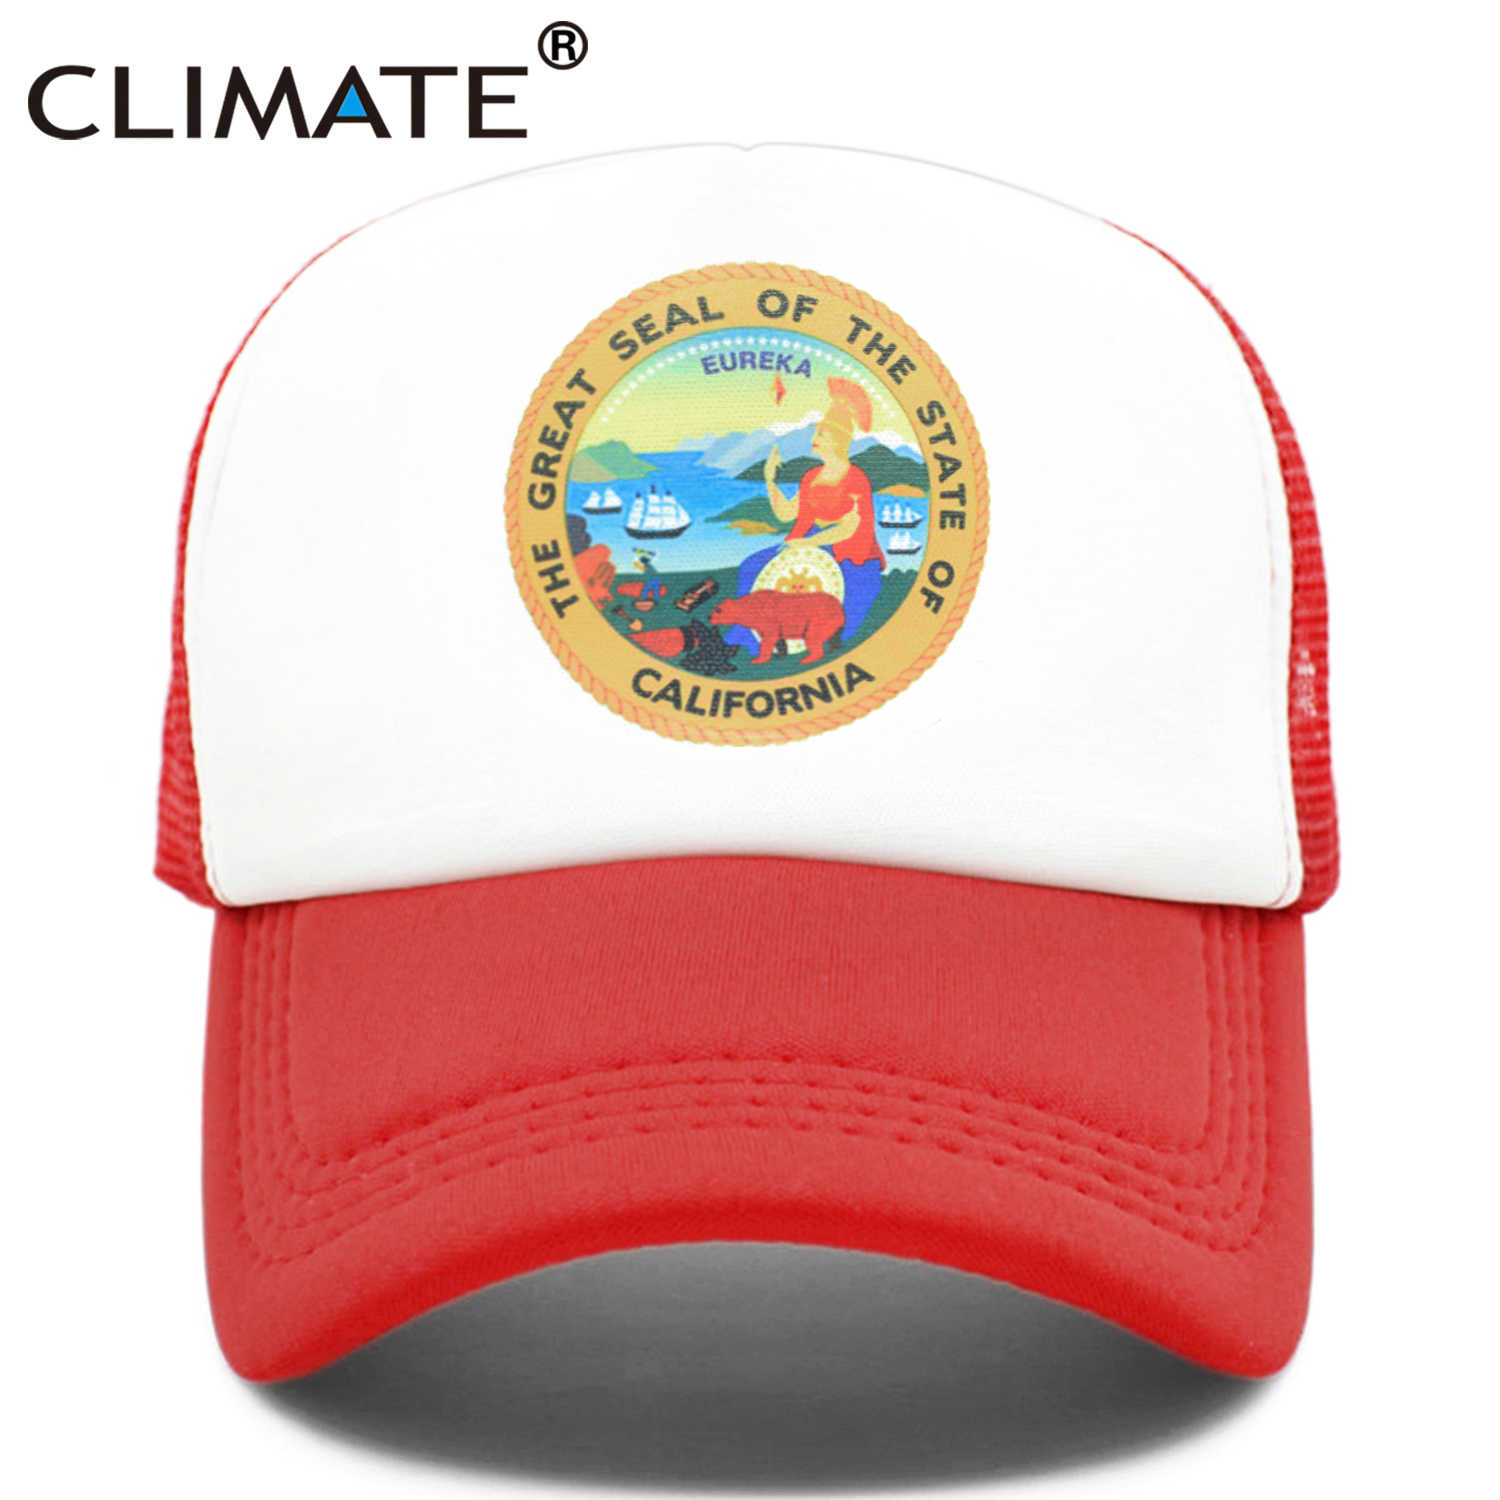 CLIMA California Trucker Cap California Republic Flag Orso Caps Hip Hop Uomo Donna Divertente Cappello Fresco Berretto Da Baseball Della Maglia di Estate cap